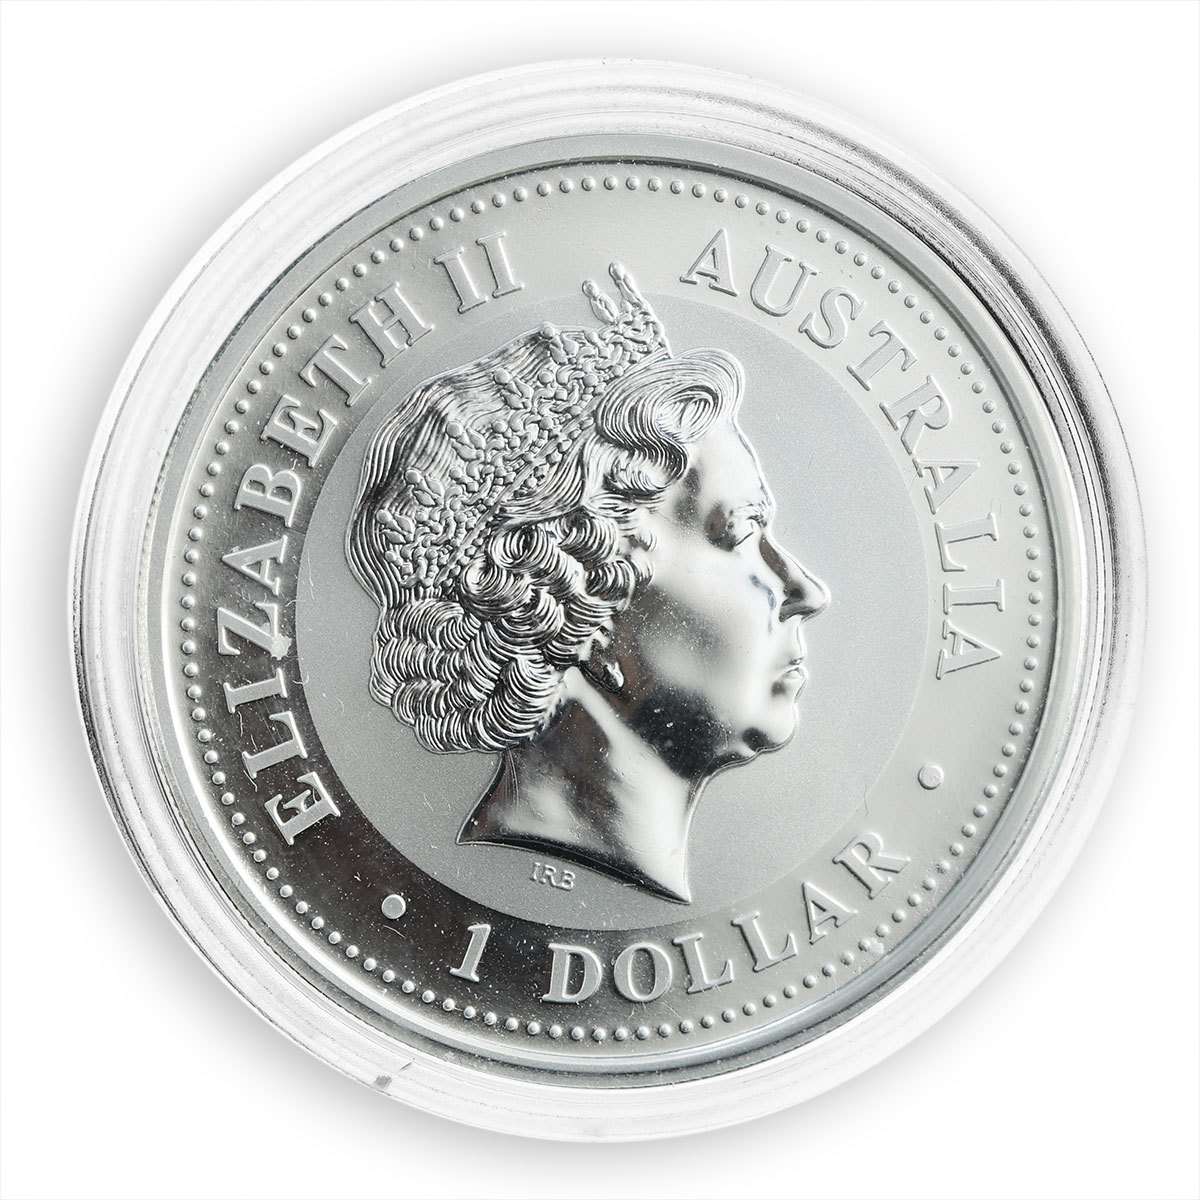 Australia $1 Year of the Rooster Lunar Colorized silver coin 1 oz 2005